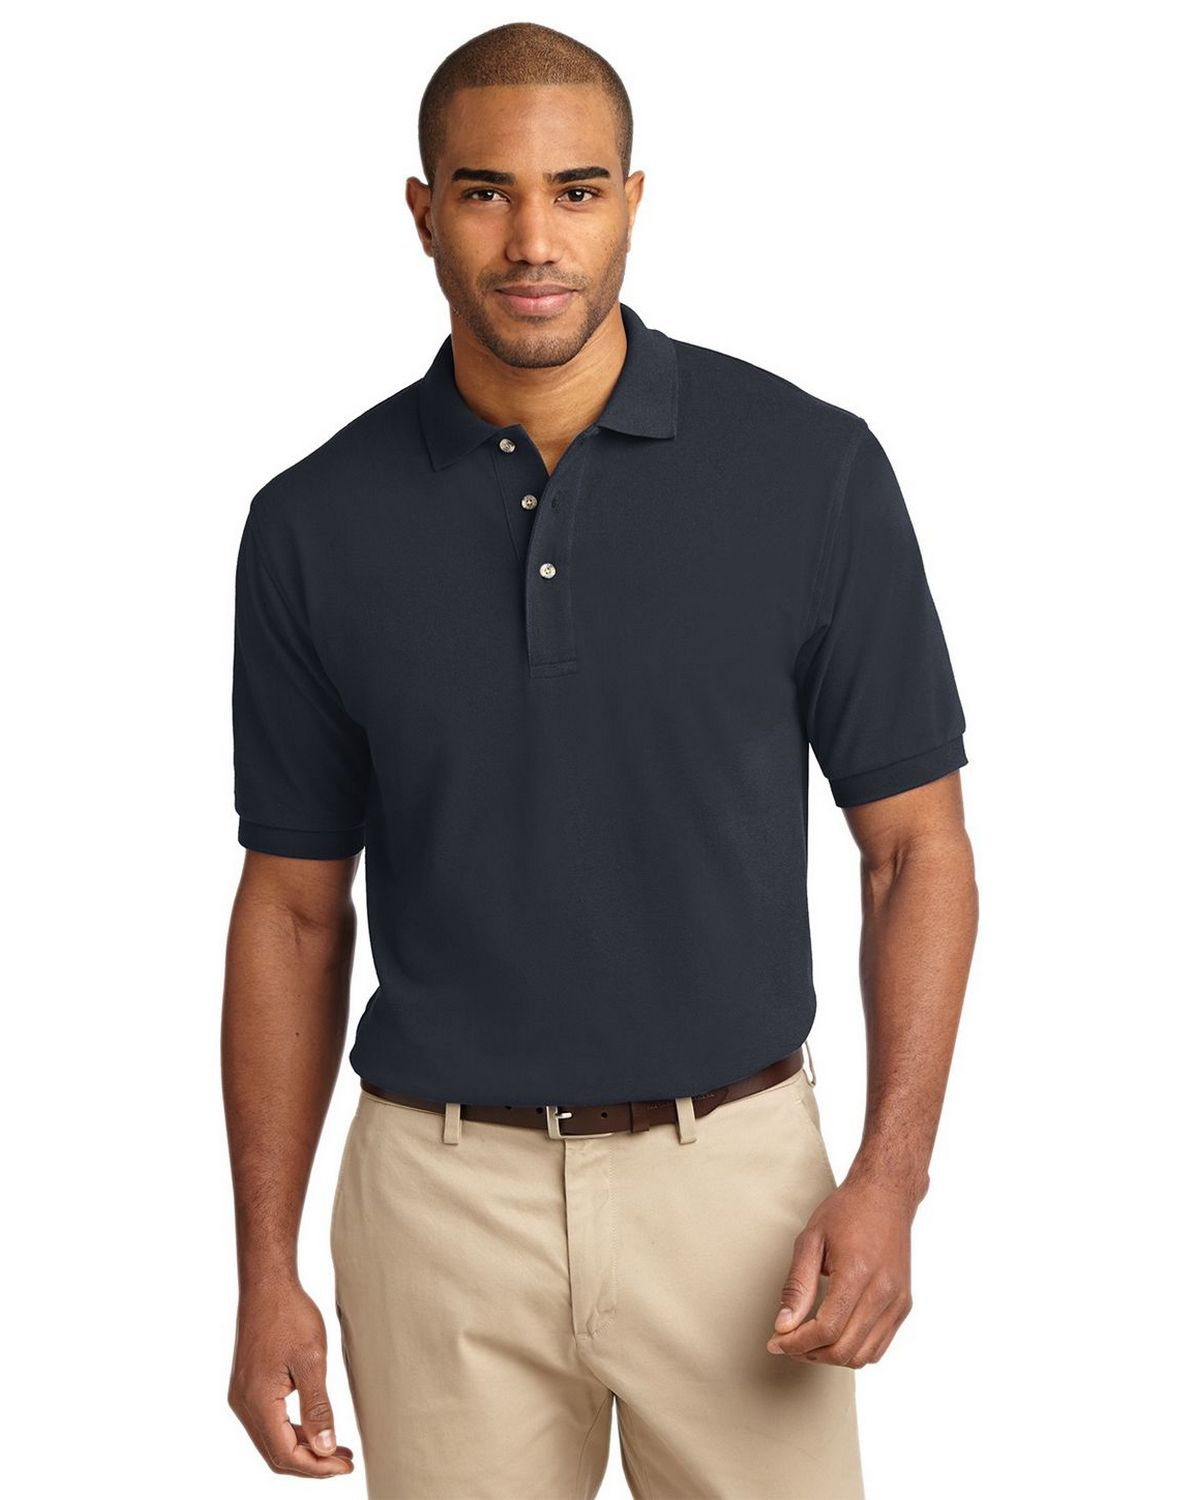 Port Authority K420 Pique Knit Polo - Classic Navy - XS